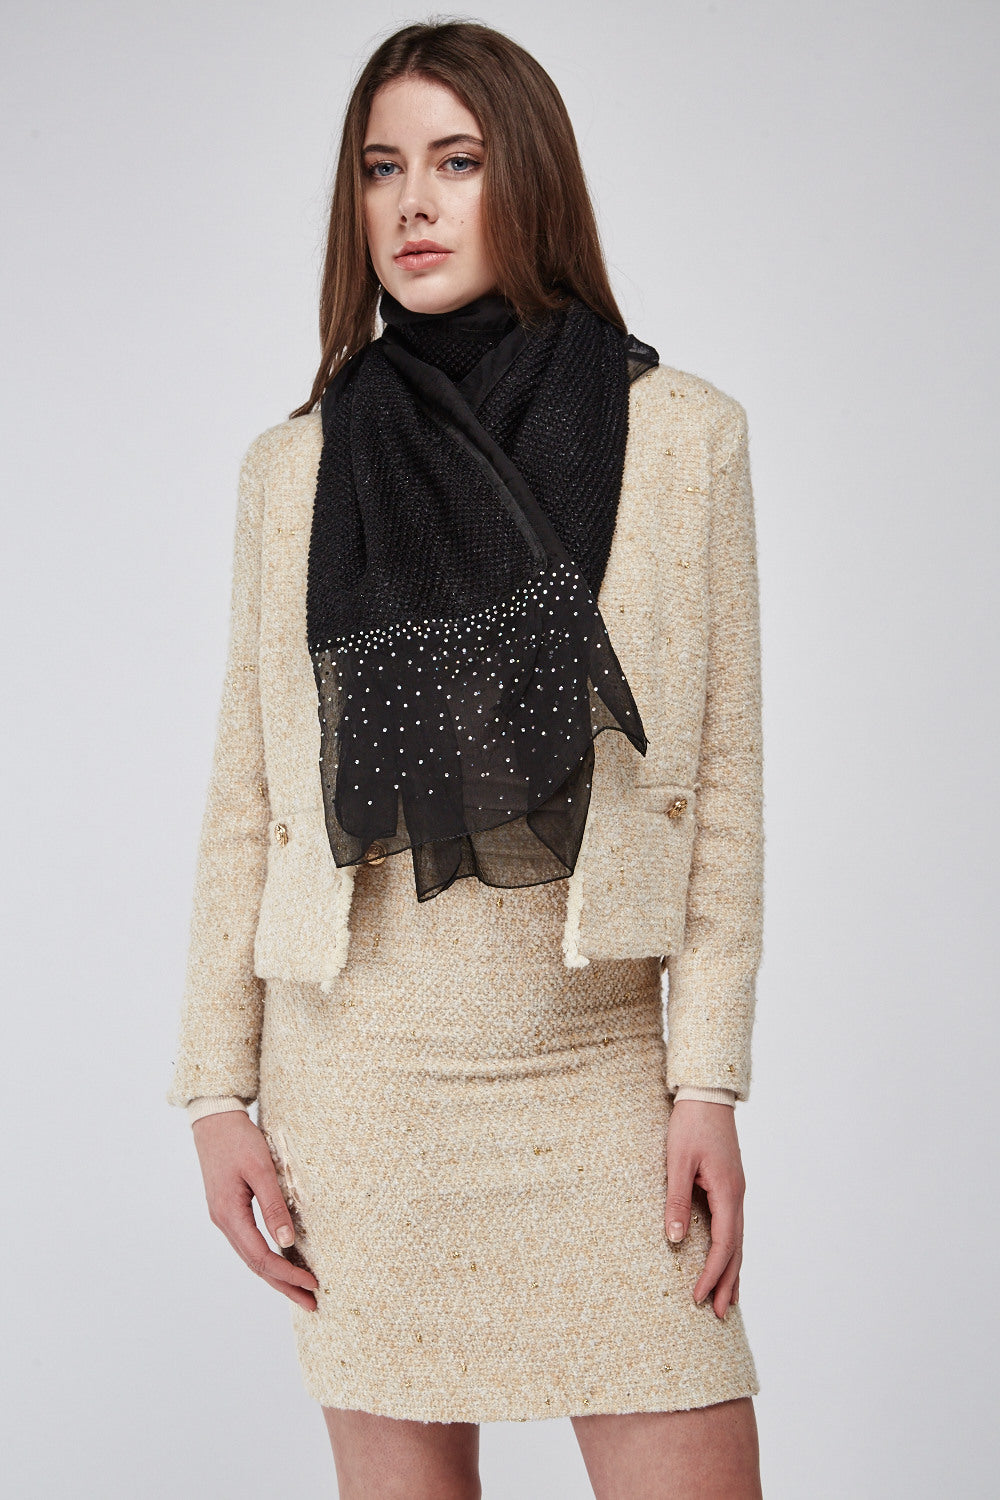 Abena Contrast Tones Knit Scarf - Woven Trends